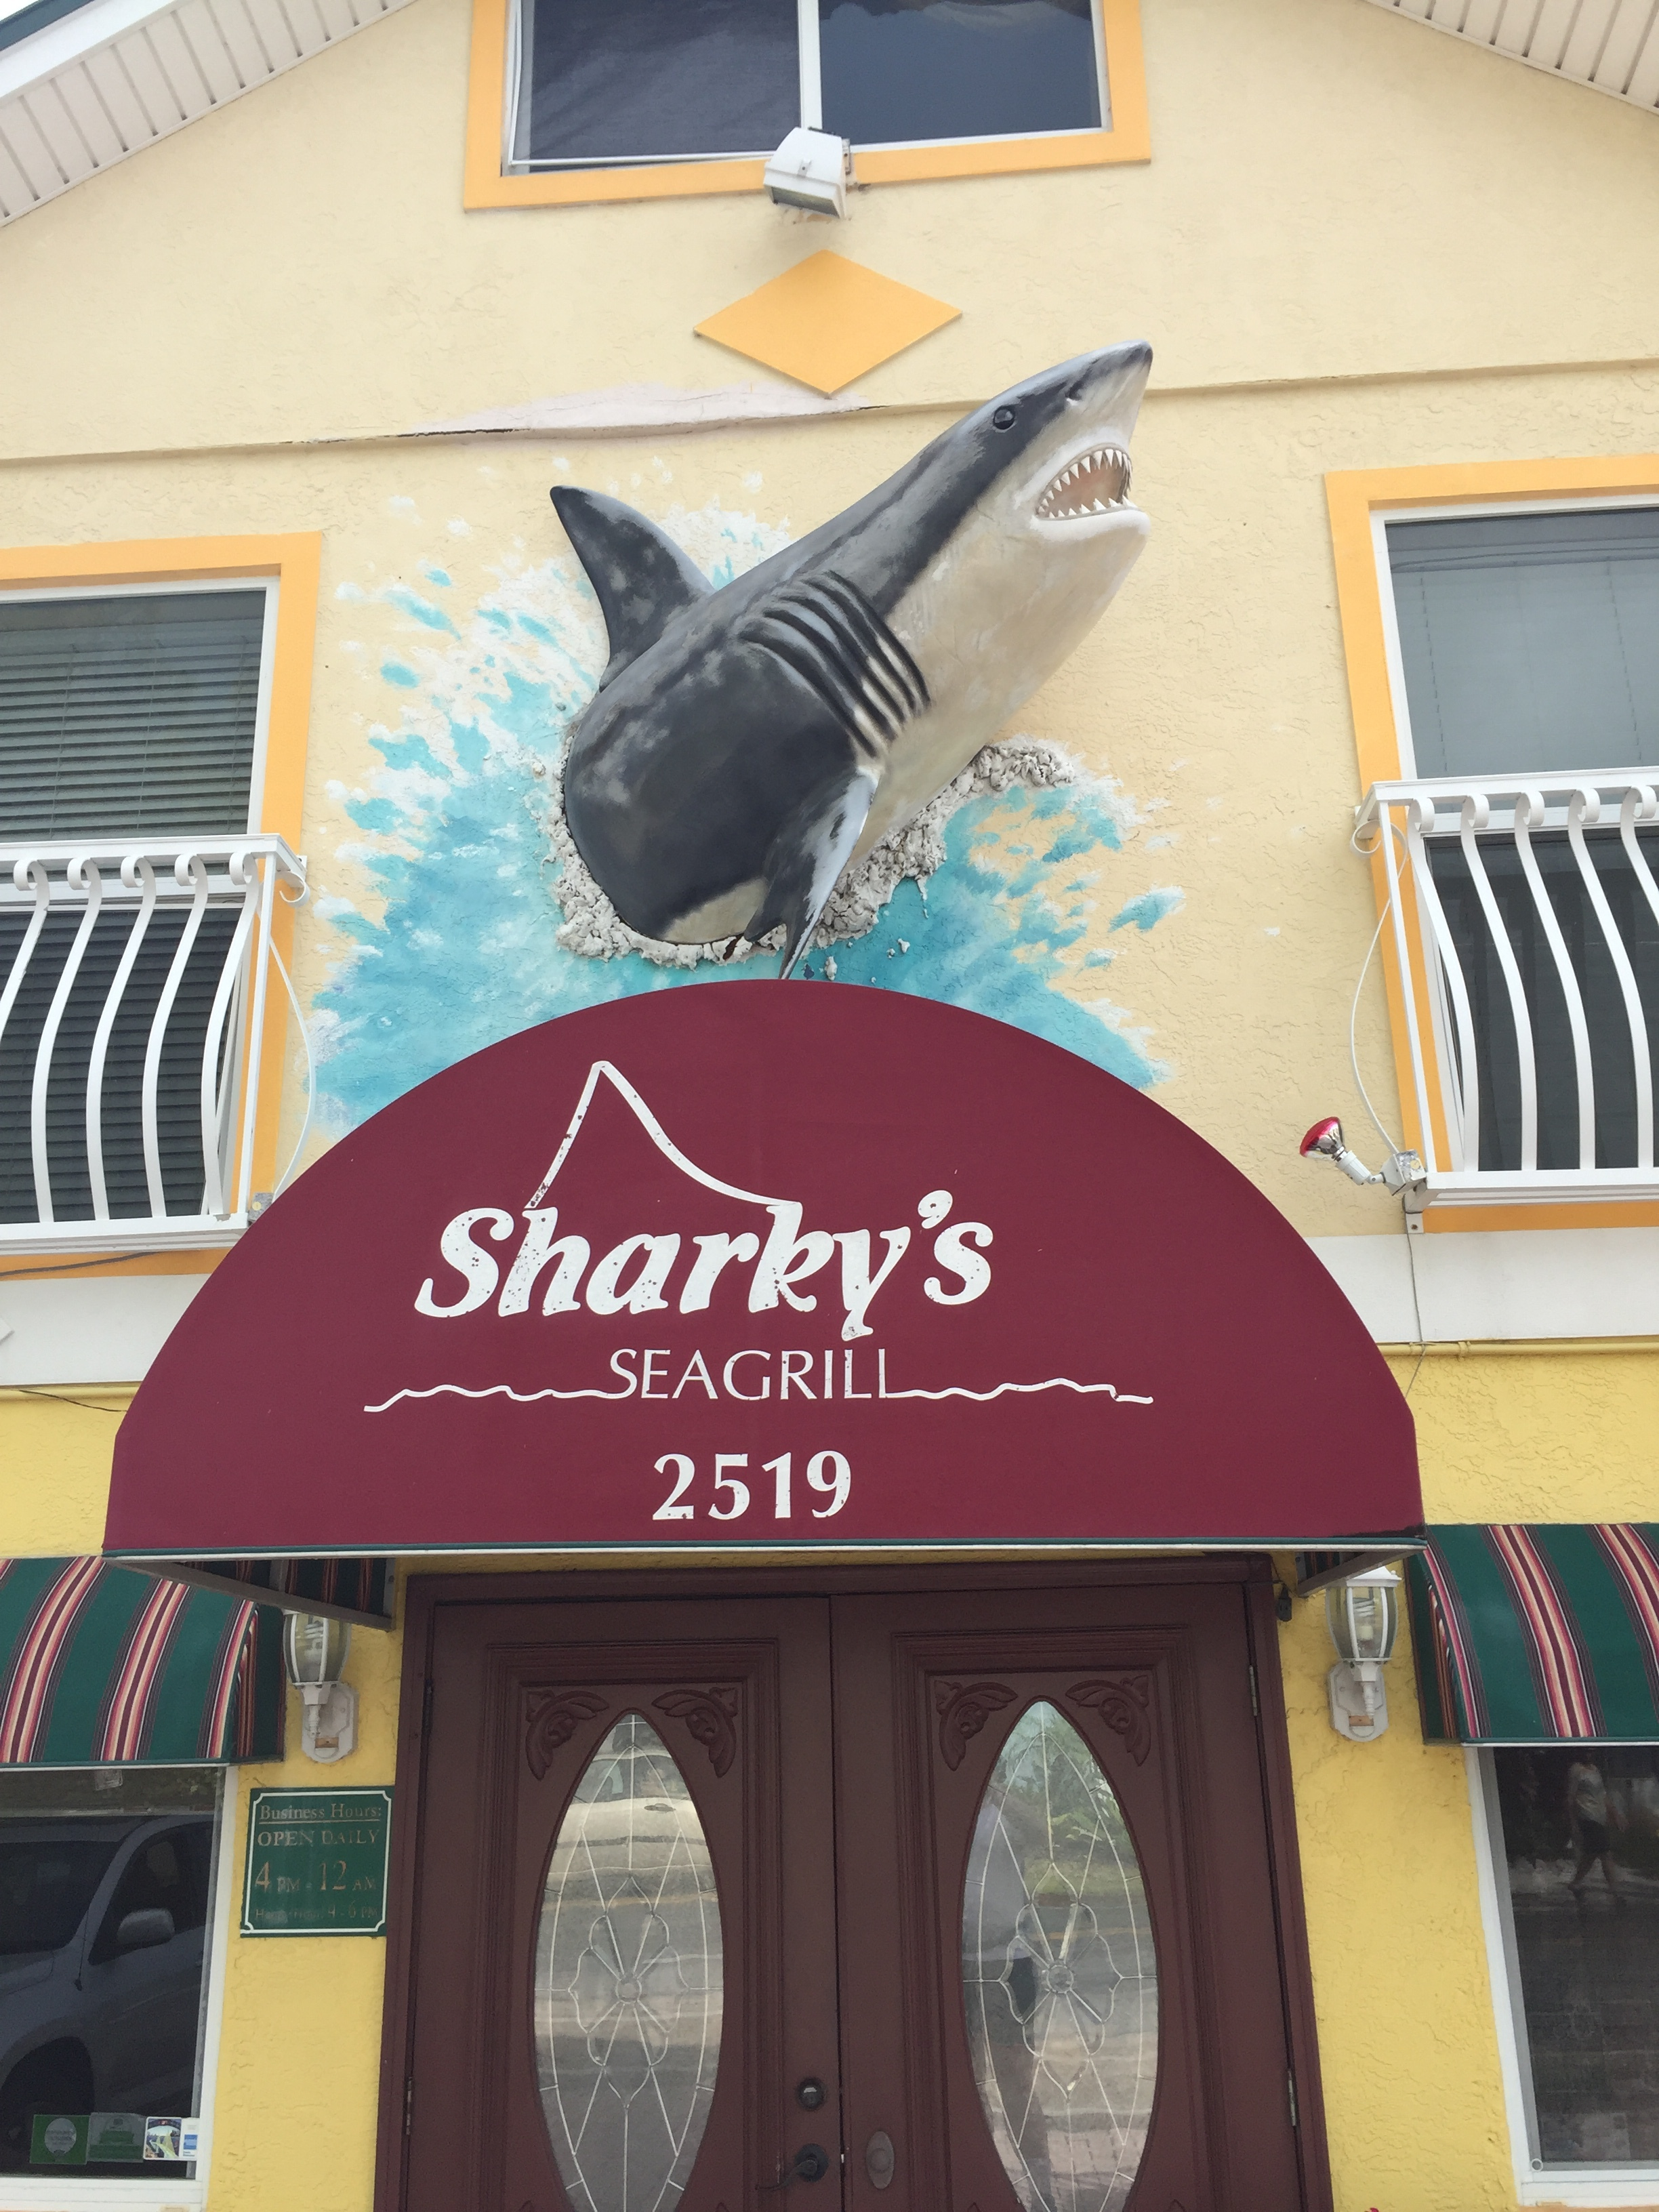 Yup.  Sharky's Restaurant.  Complete with giant shark statue bursting out of the wall of the restaurant.